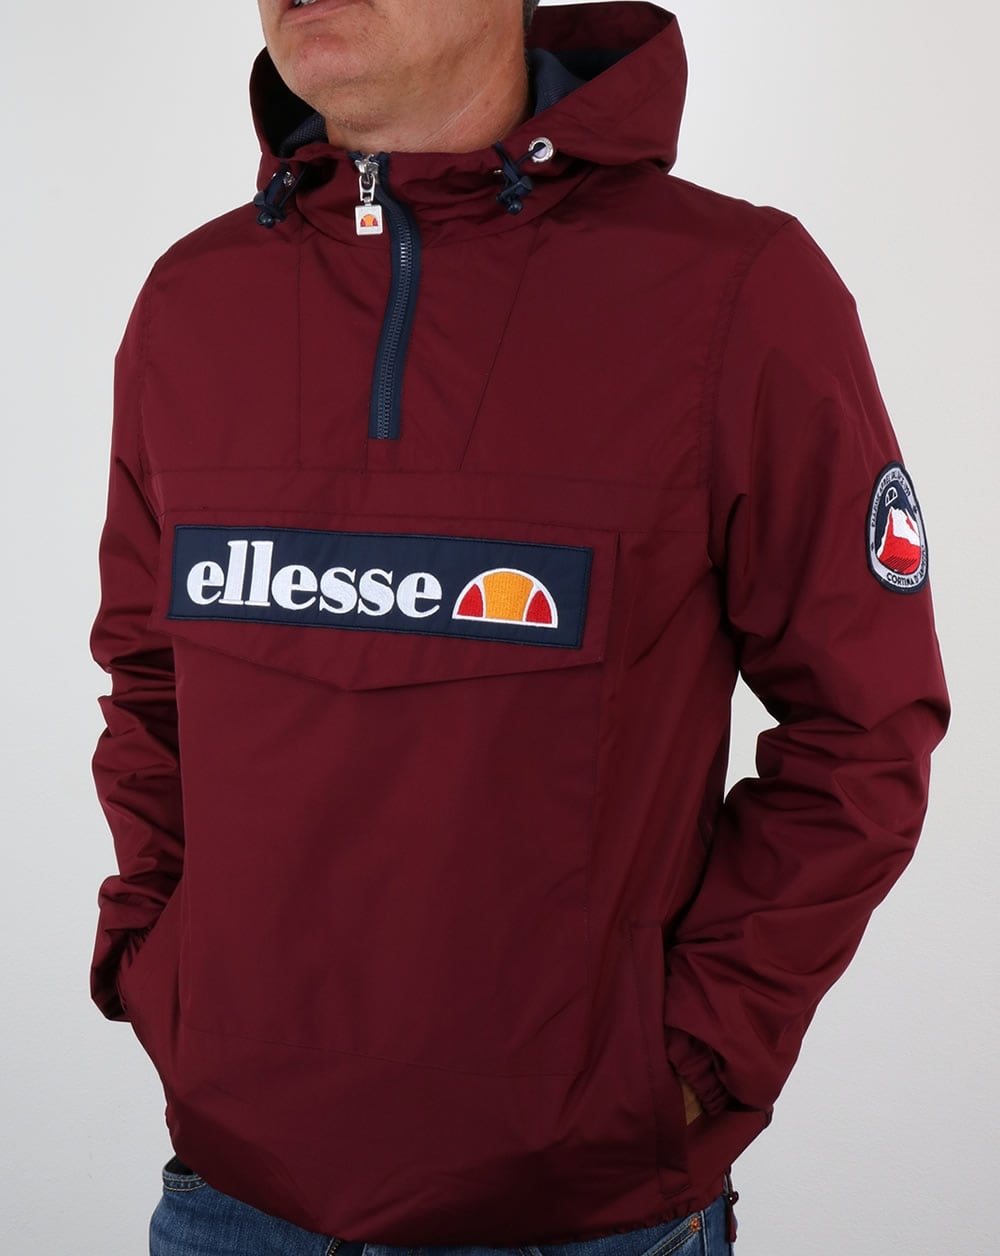 ellesse mont ii jacket burgundy smock coat overhead ski. Black Bedroom Furniture Sets. Home Design Ideas